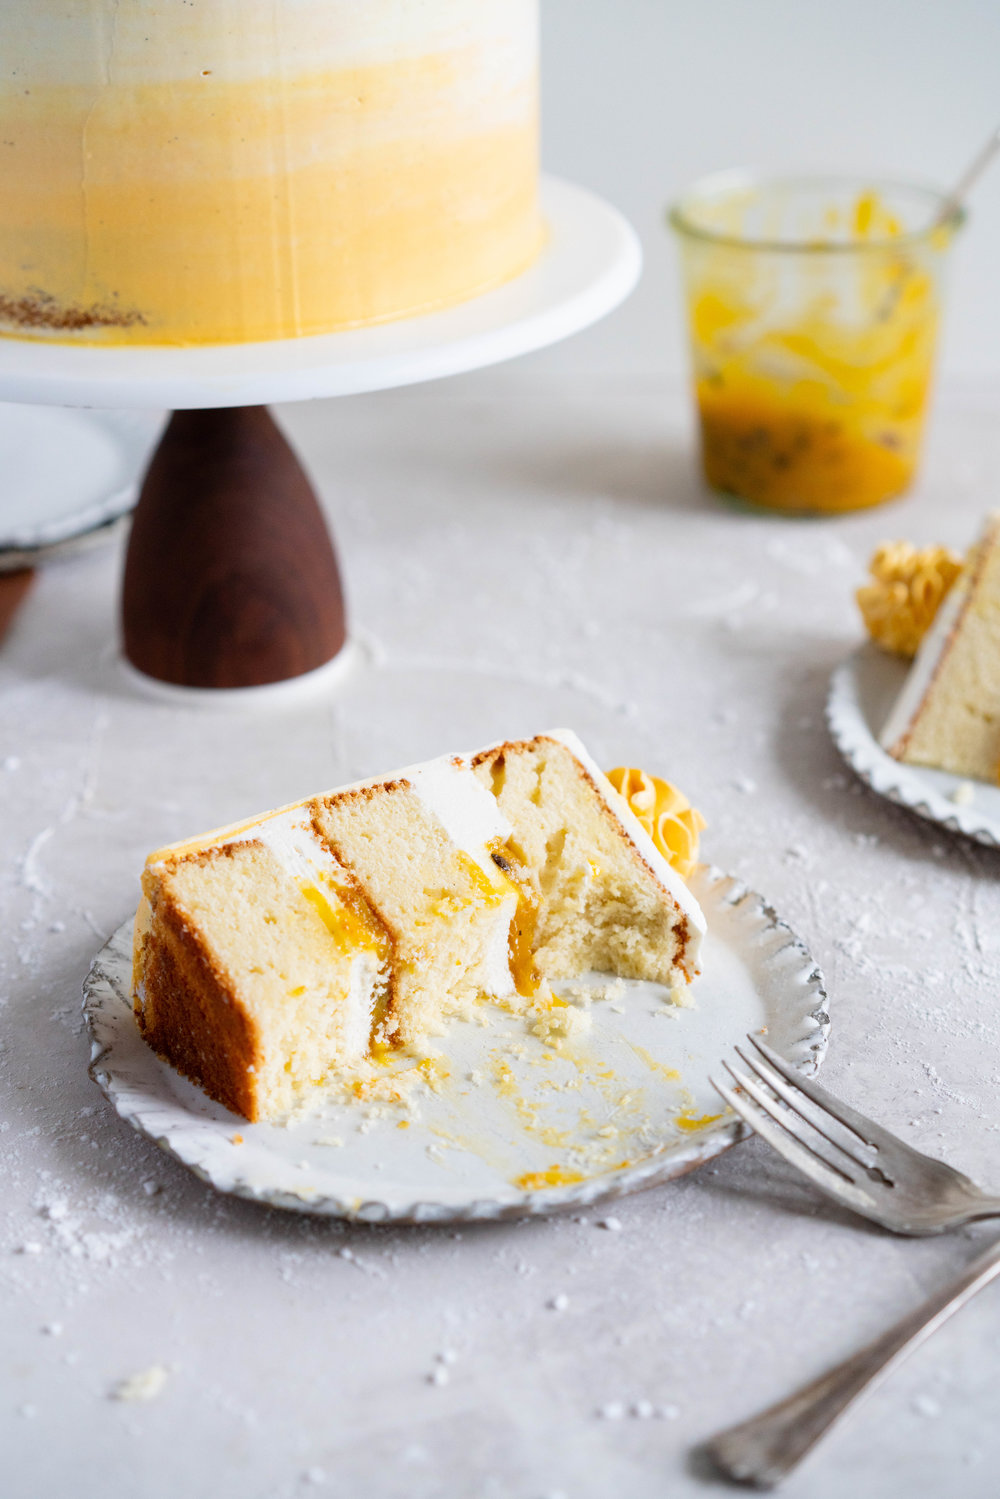 Vanilla Layer Cake with Passionfruit Curd and Vanilla Swiss Meringue Buttercream. Perfect for any occasion - layers of vanilla cake are sandwiched with a silky vanilla bean swiss meringue buttercream, and filled with a tangy, creamy passionfruit curd. #layercake #passionfruitcake